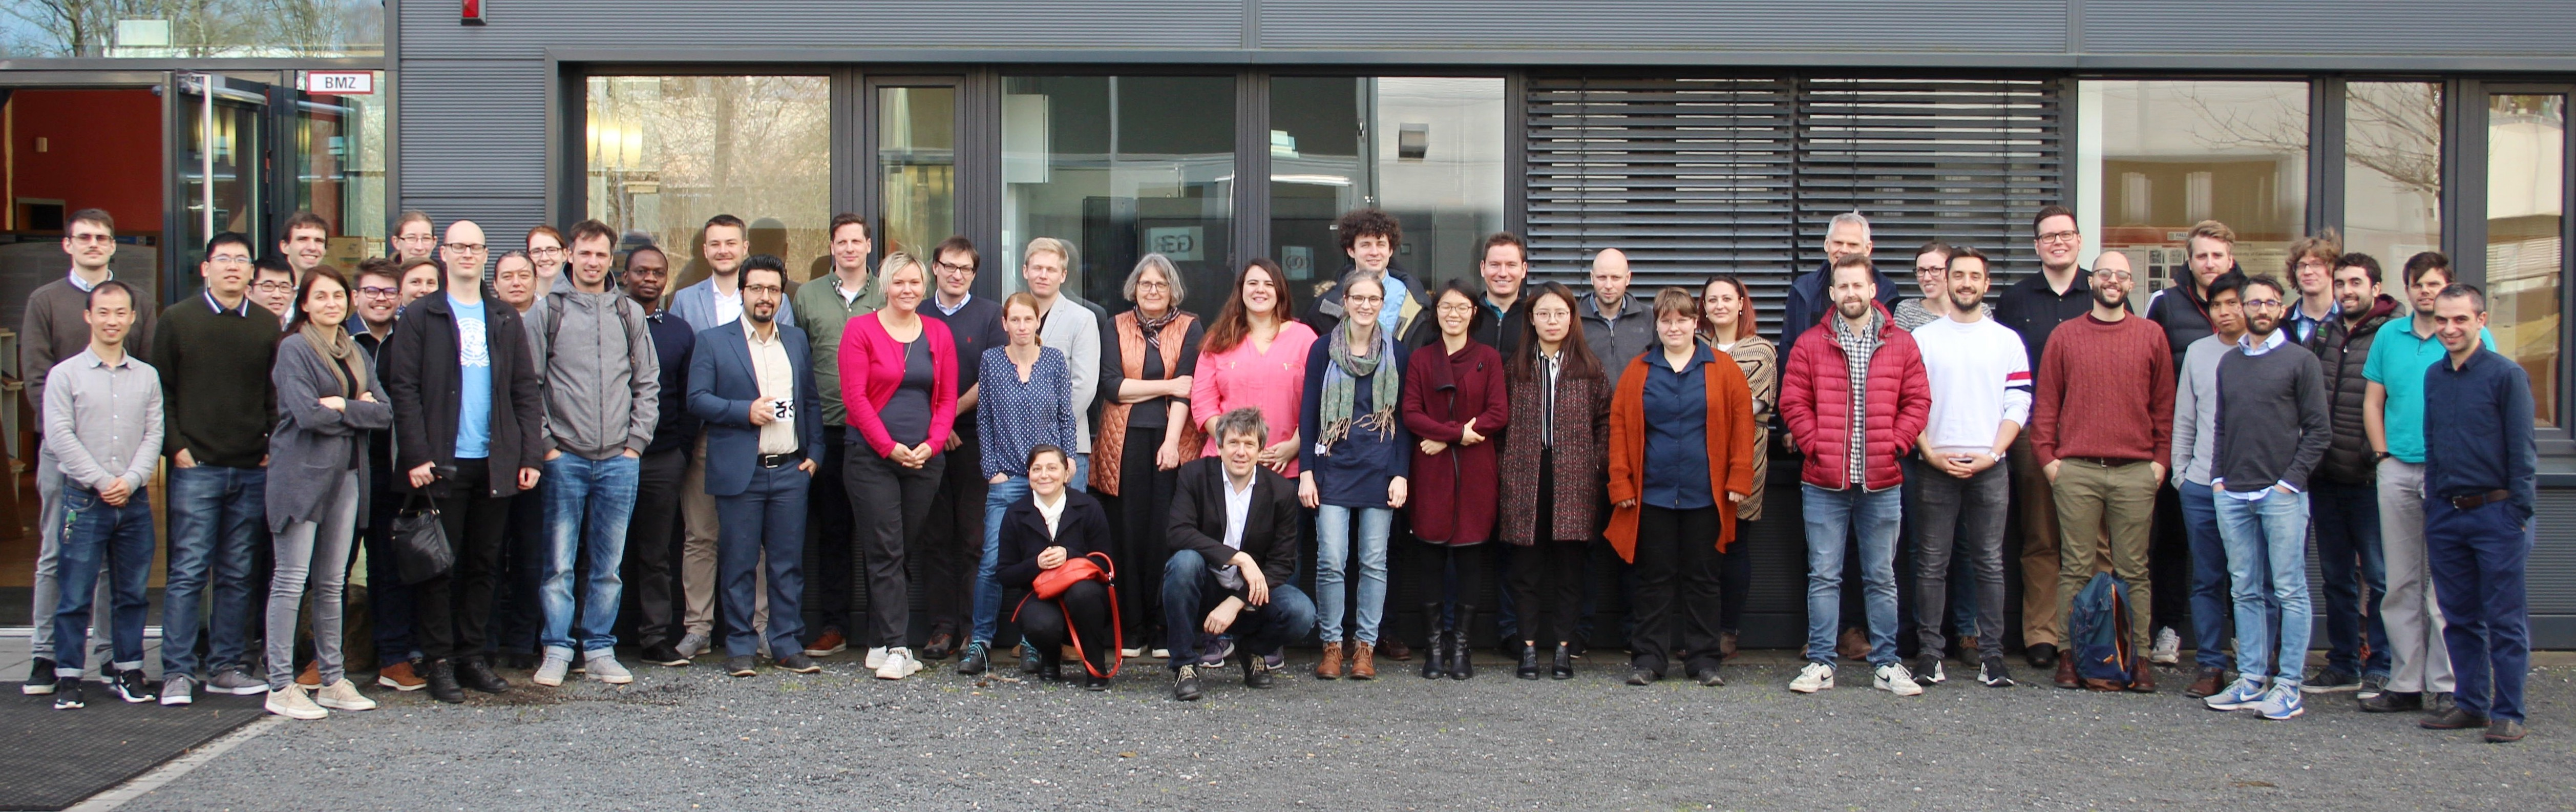 Group photo of Poroelasticity Minisymposium 2019 in Bochum